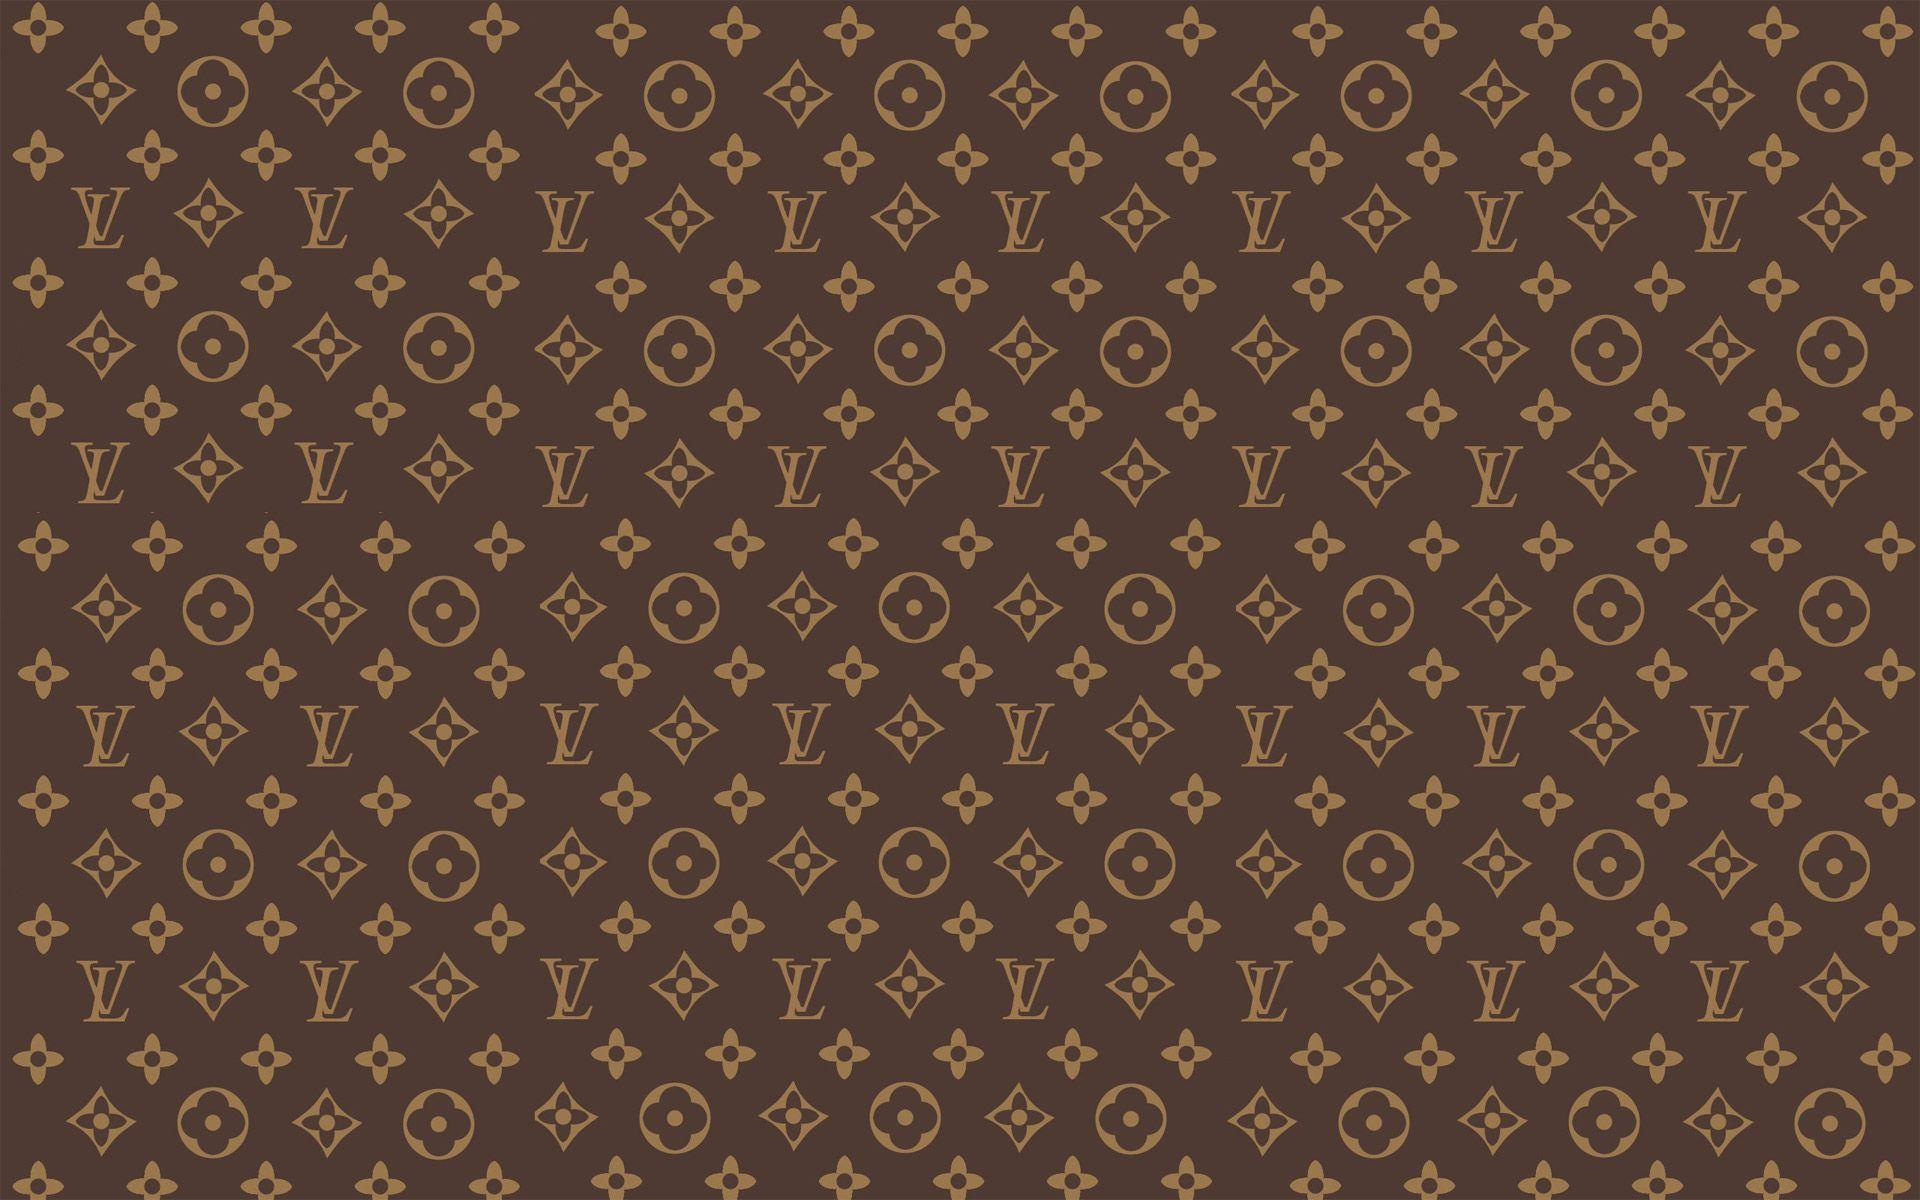 Wonderful Wallpaper Macbook Louis Vuitton - XoezyPC  You Should Have_174863.jpg